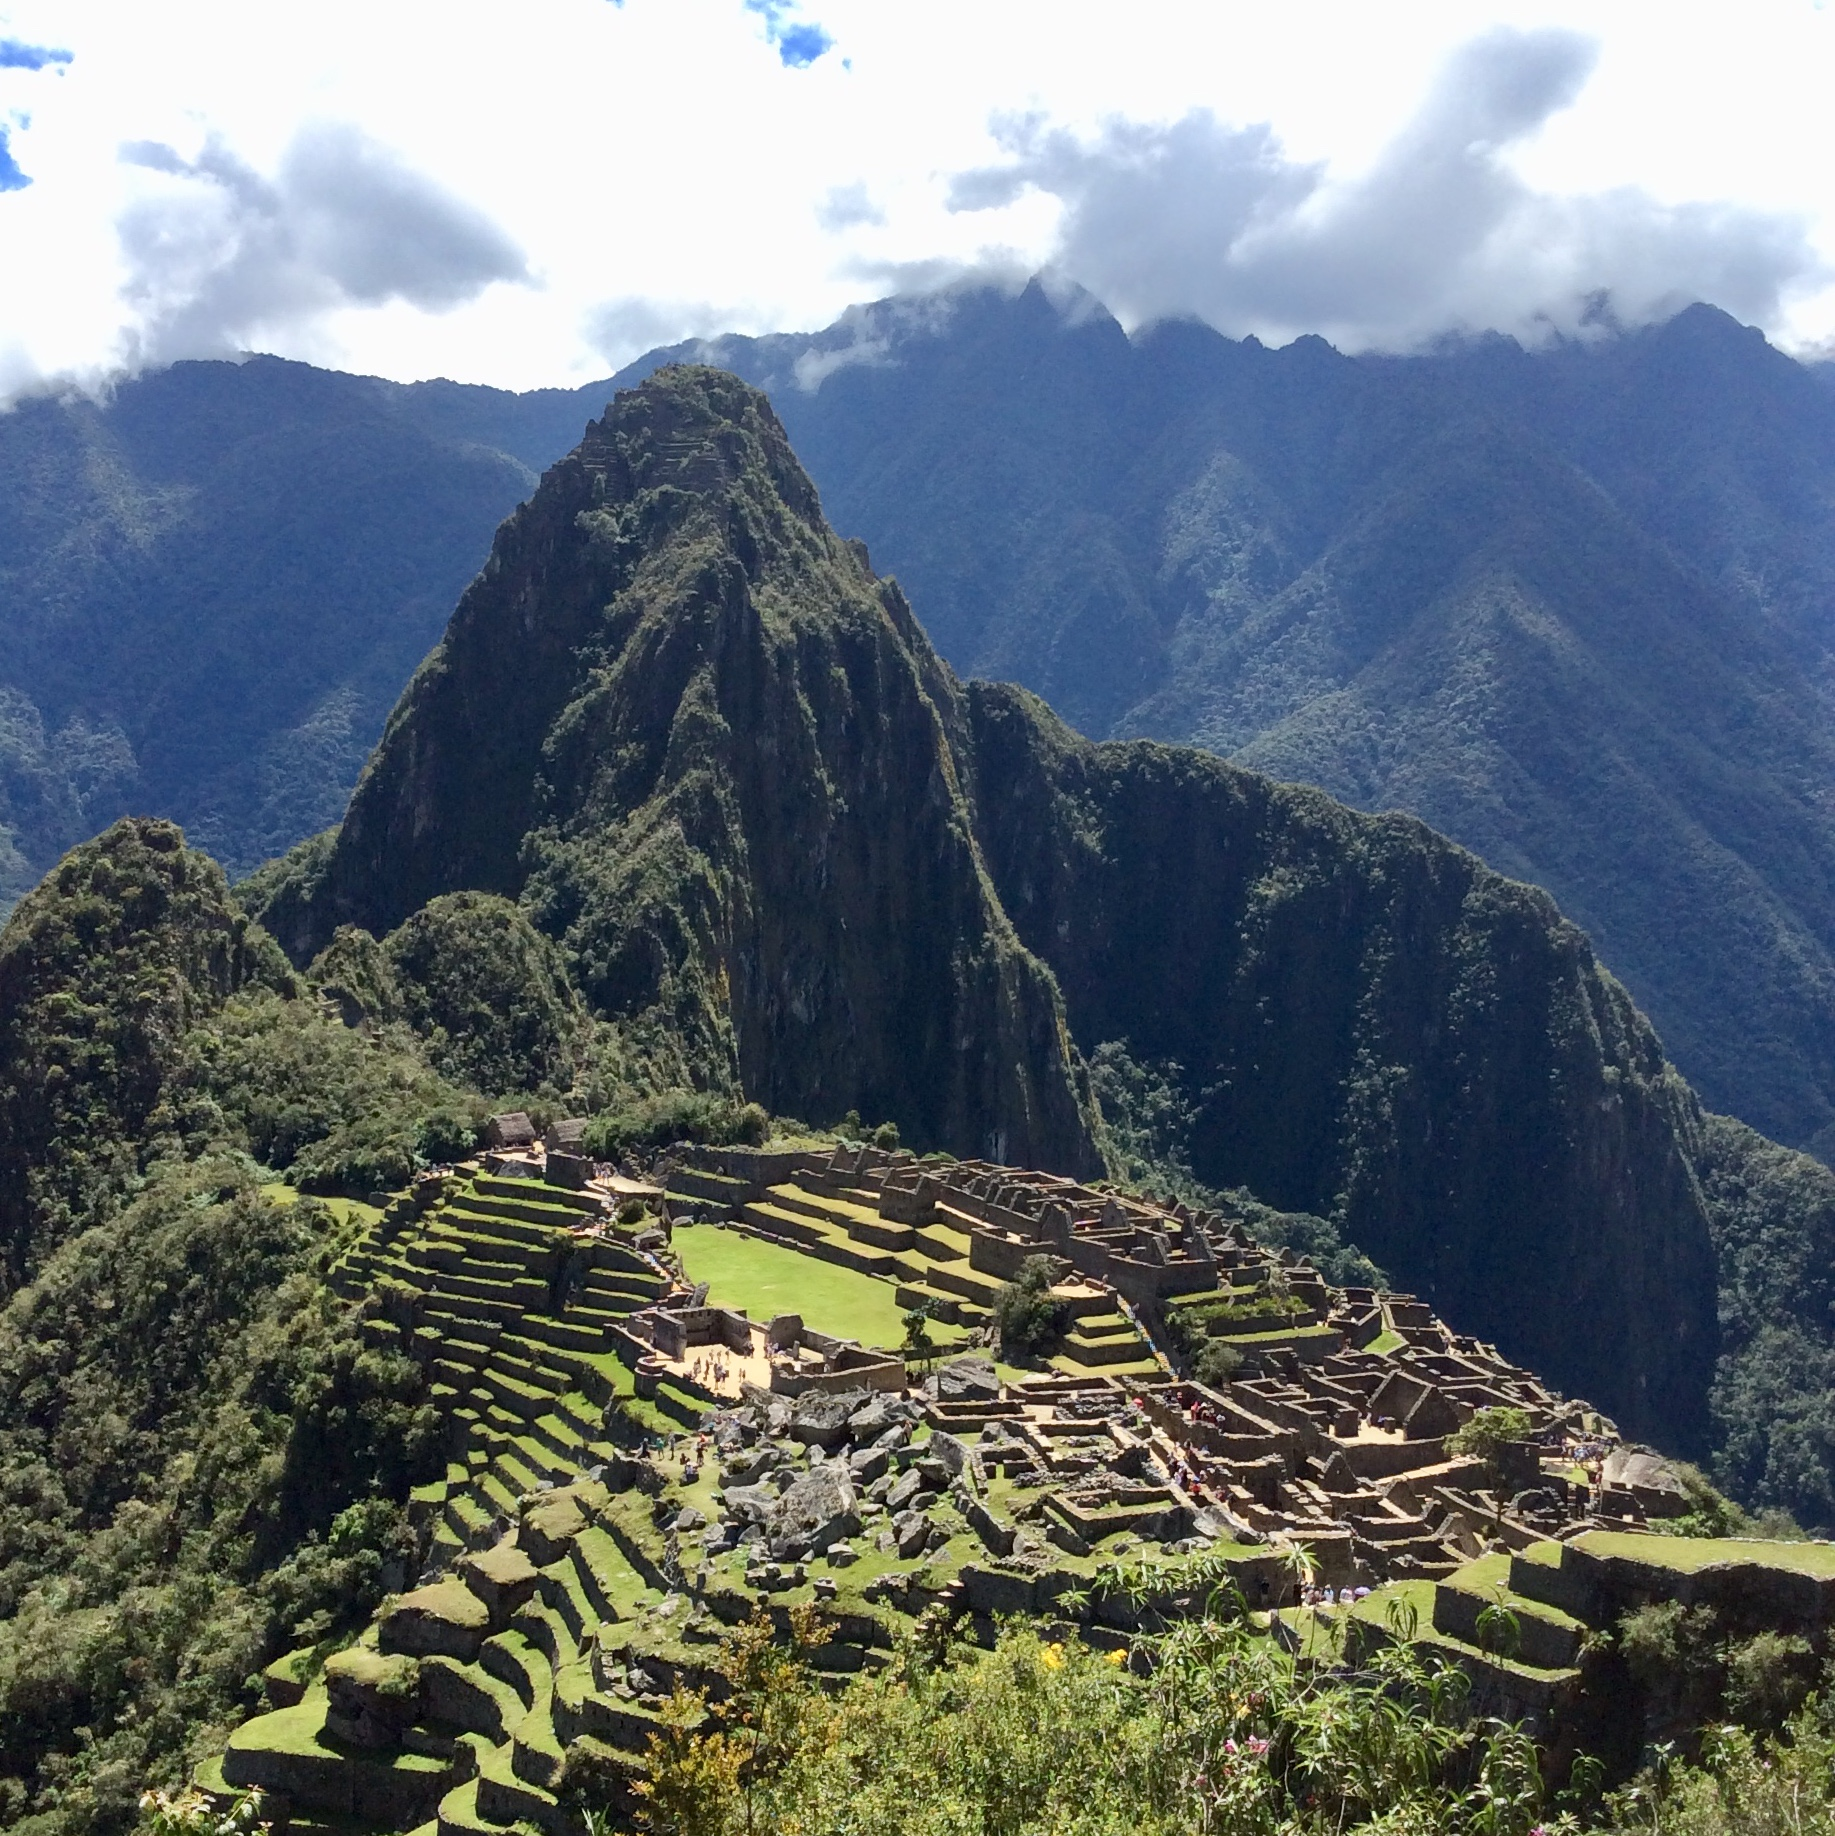 """The World-Famous Macchu Picchu. A UNESCO World Heritage Site.   High in the Andes of Peru, Machu Picchu is the site of an ancient Inca city. One of the most familiar symbols of the Incan empire, and often referred to as """"The Lost City of the Incas""""; it is also well-established as one of the most famous and spectacular sites of ruins in the world. A visit to Peru would not be complete without seeing it!"""